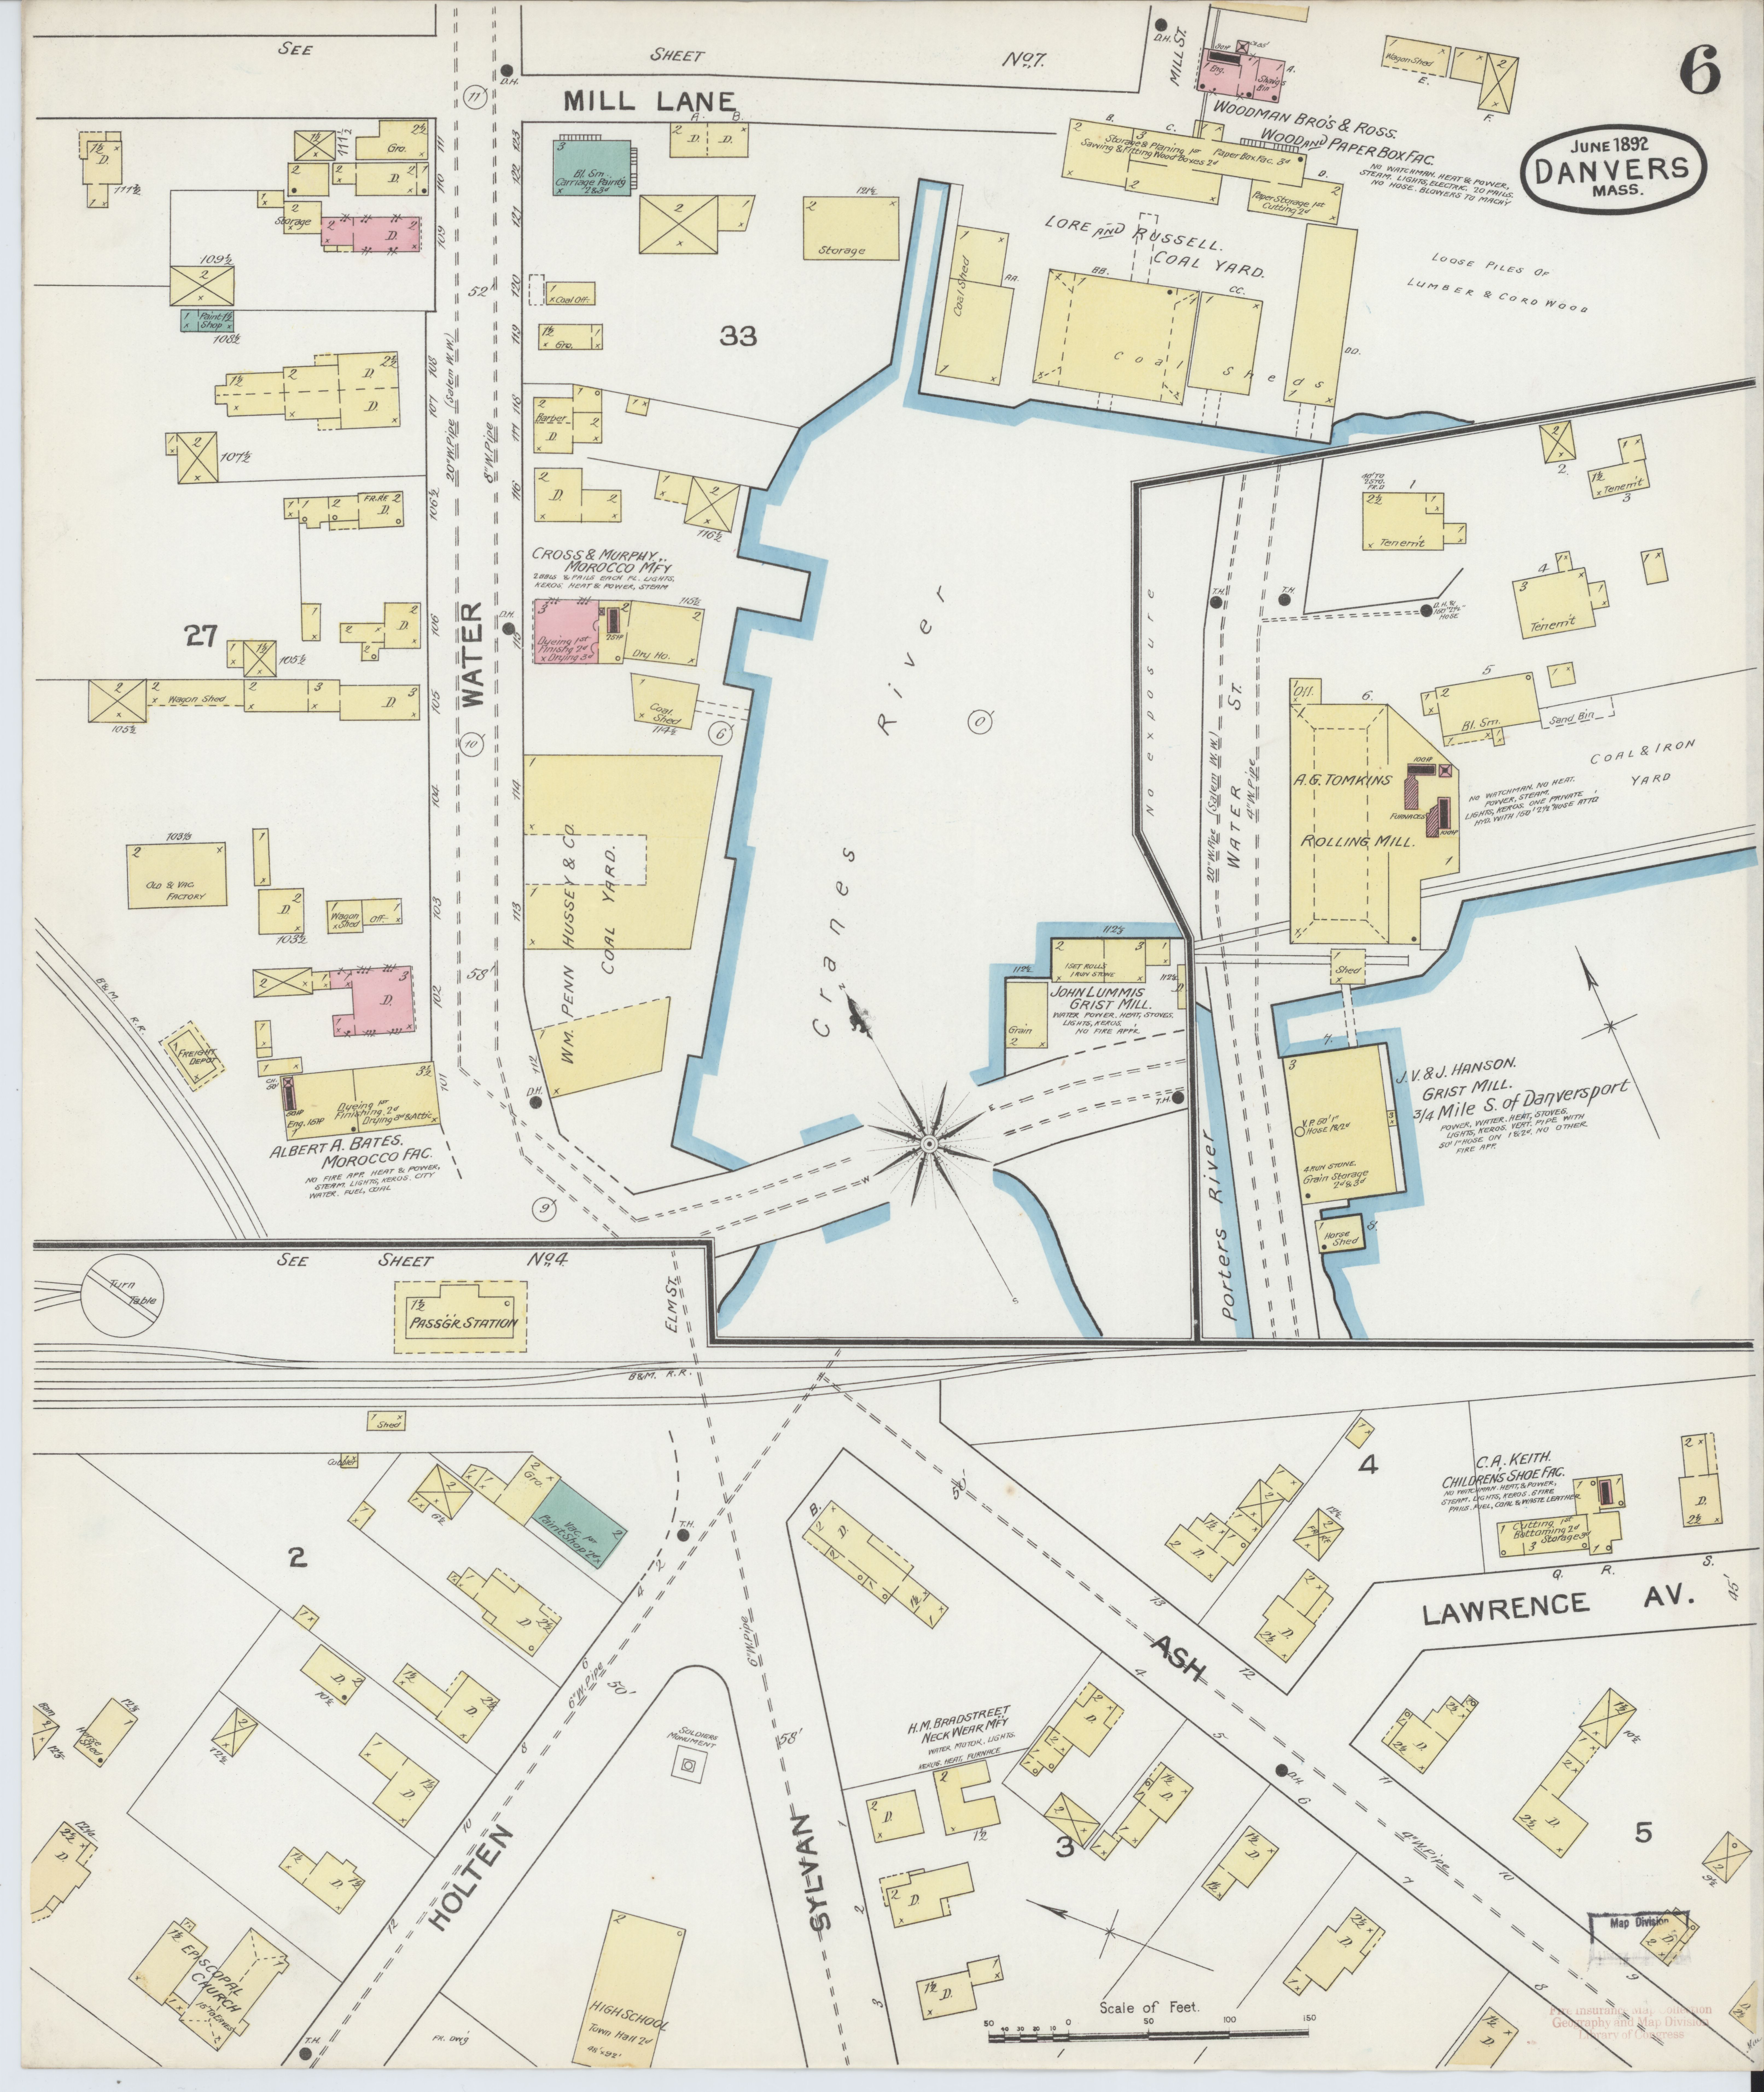 File:Sanborn Fire Insurance Map from Danvers, Es County ... on s and p charts, s and p performance, s and p futures, s and p index,